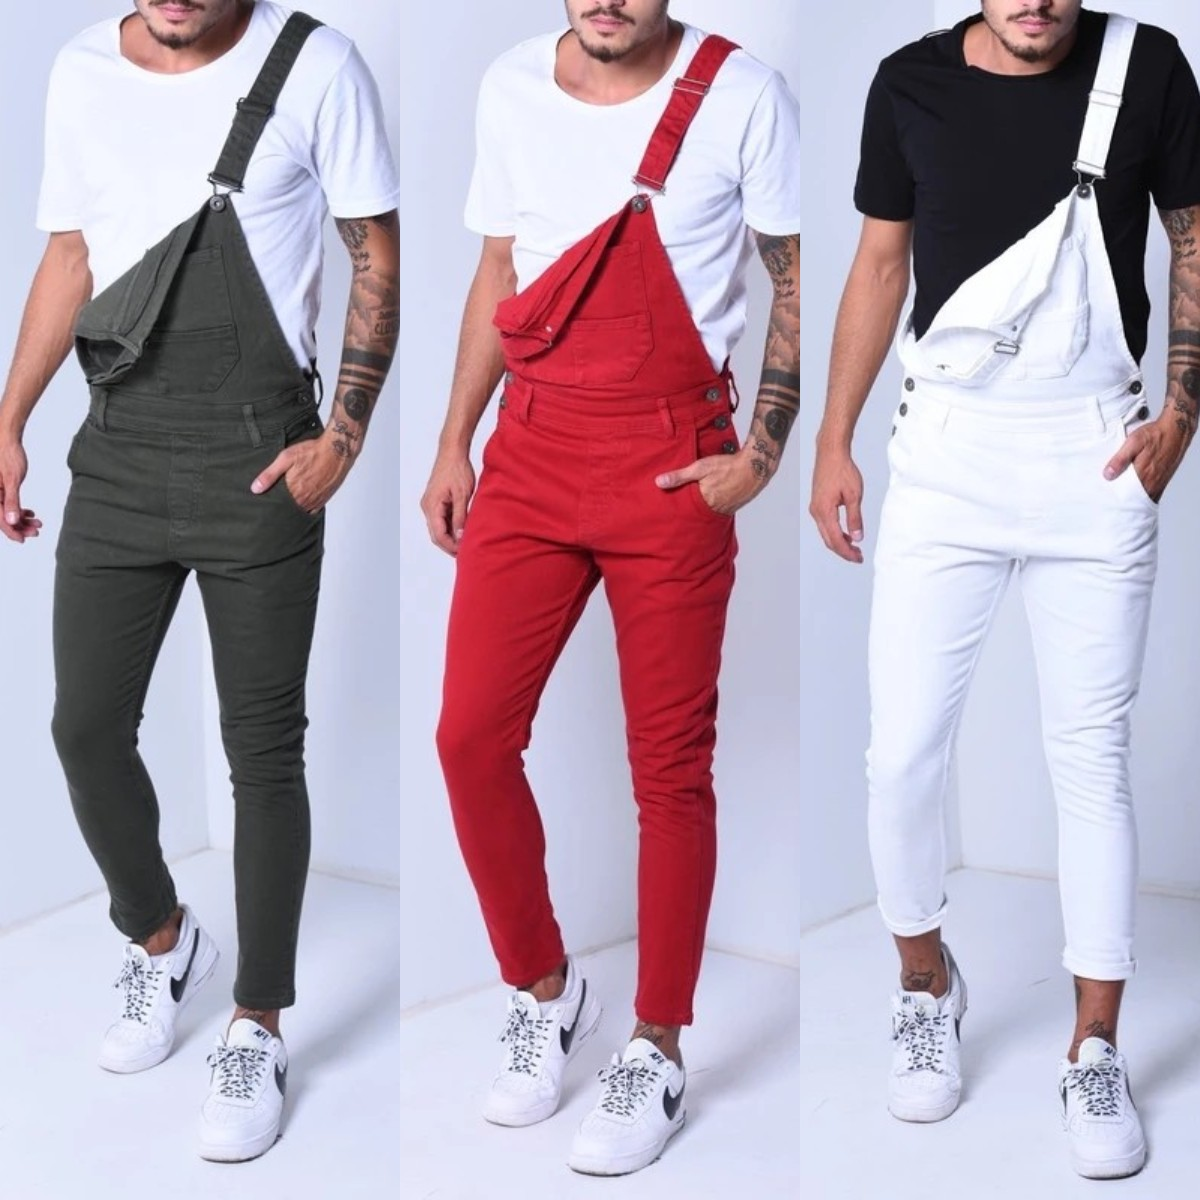 Wish Fashion Men Of Camisole Cowboy Cloth Romper Tear Cowboy Trousers Popular Work Clothes 3 PCs Color